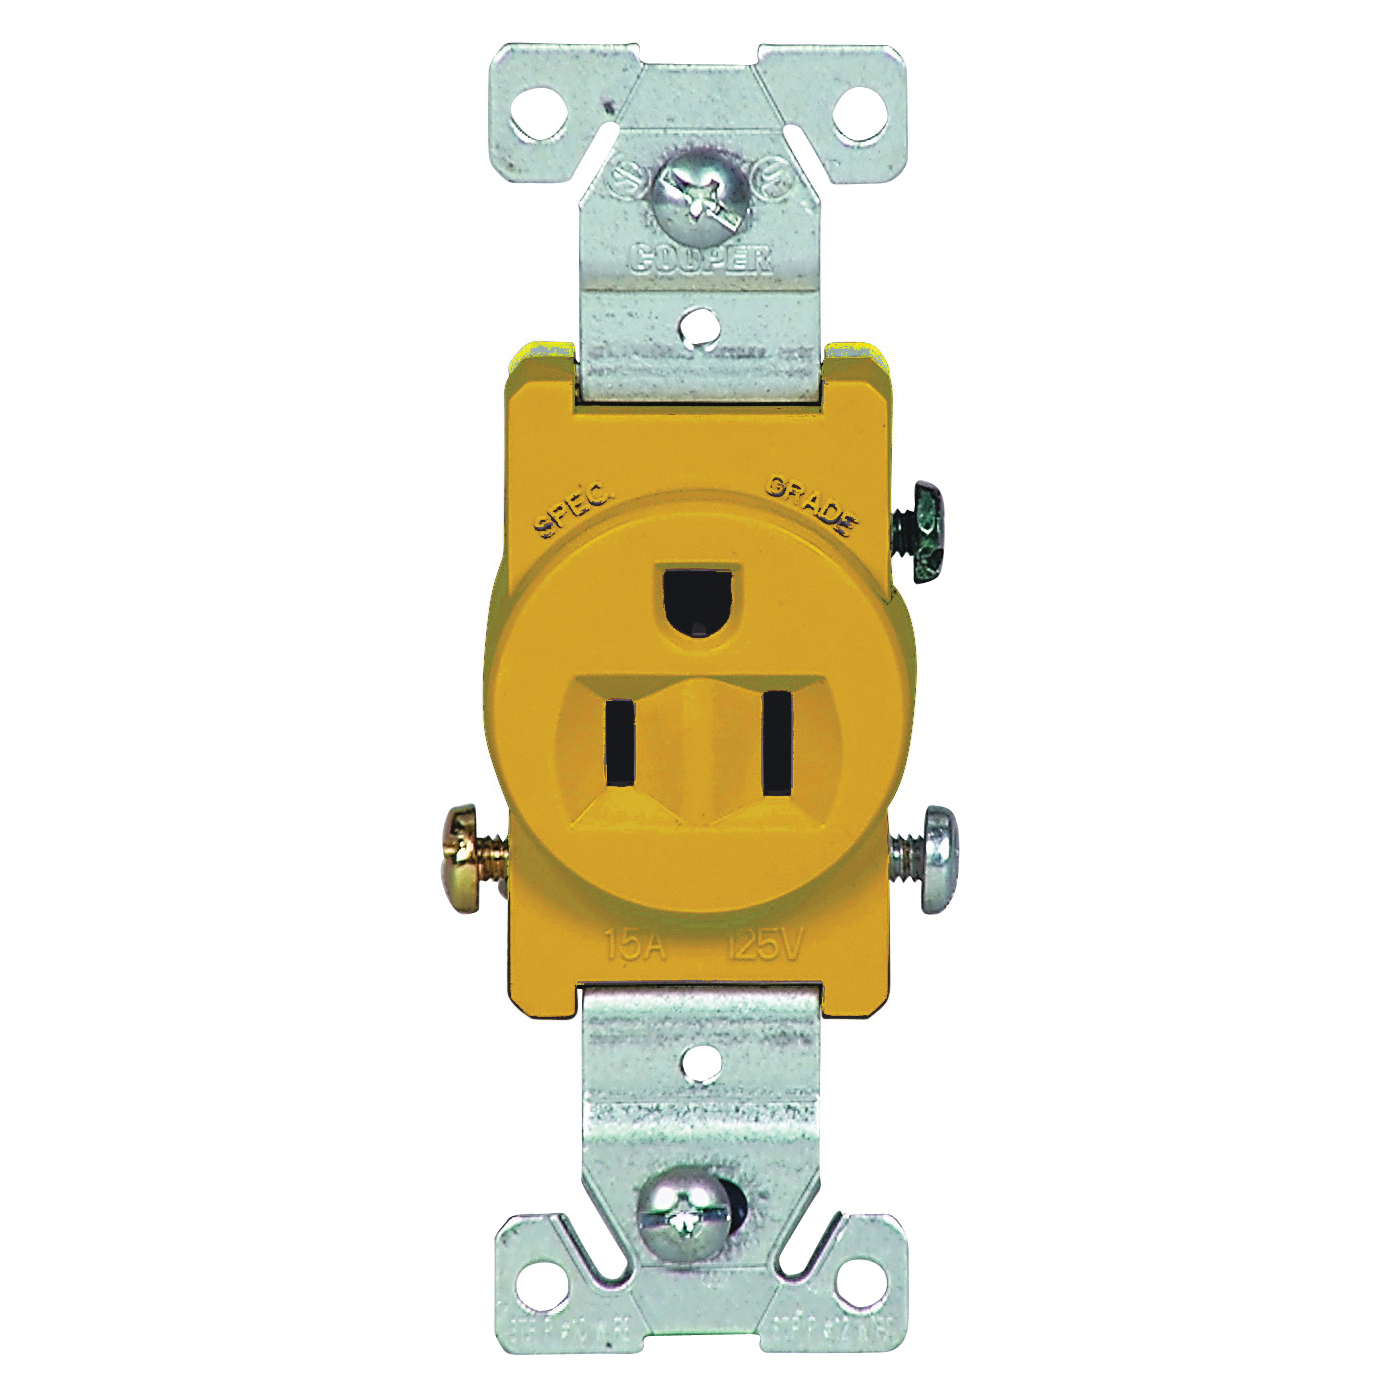 Picture of Eaton Wiring Devices 817V-BOX Single Receptacle, 2-Pole, 125 V, 15 A, Side Wiring, NEMA 5-15R, Ivory